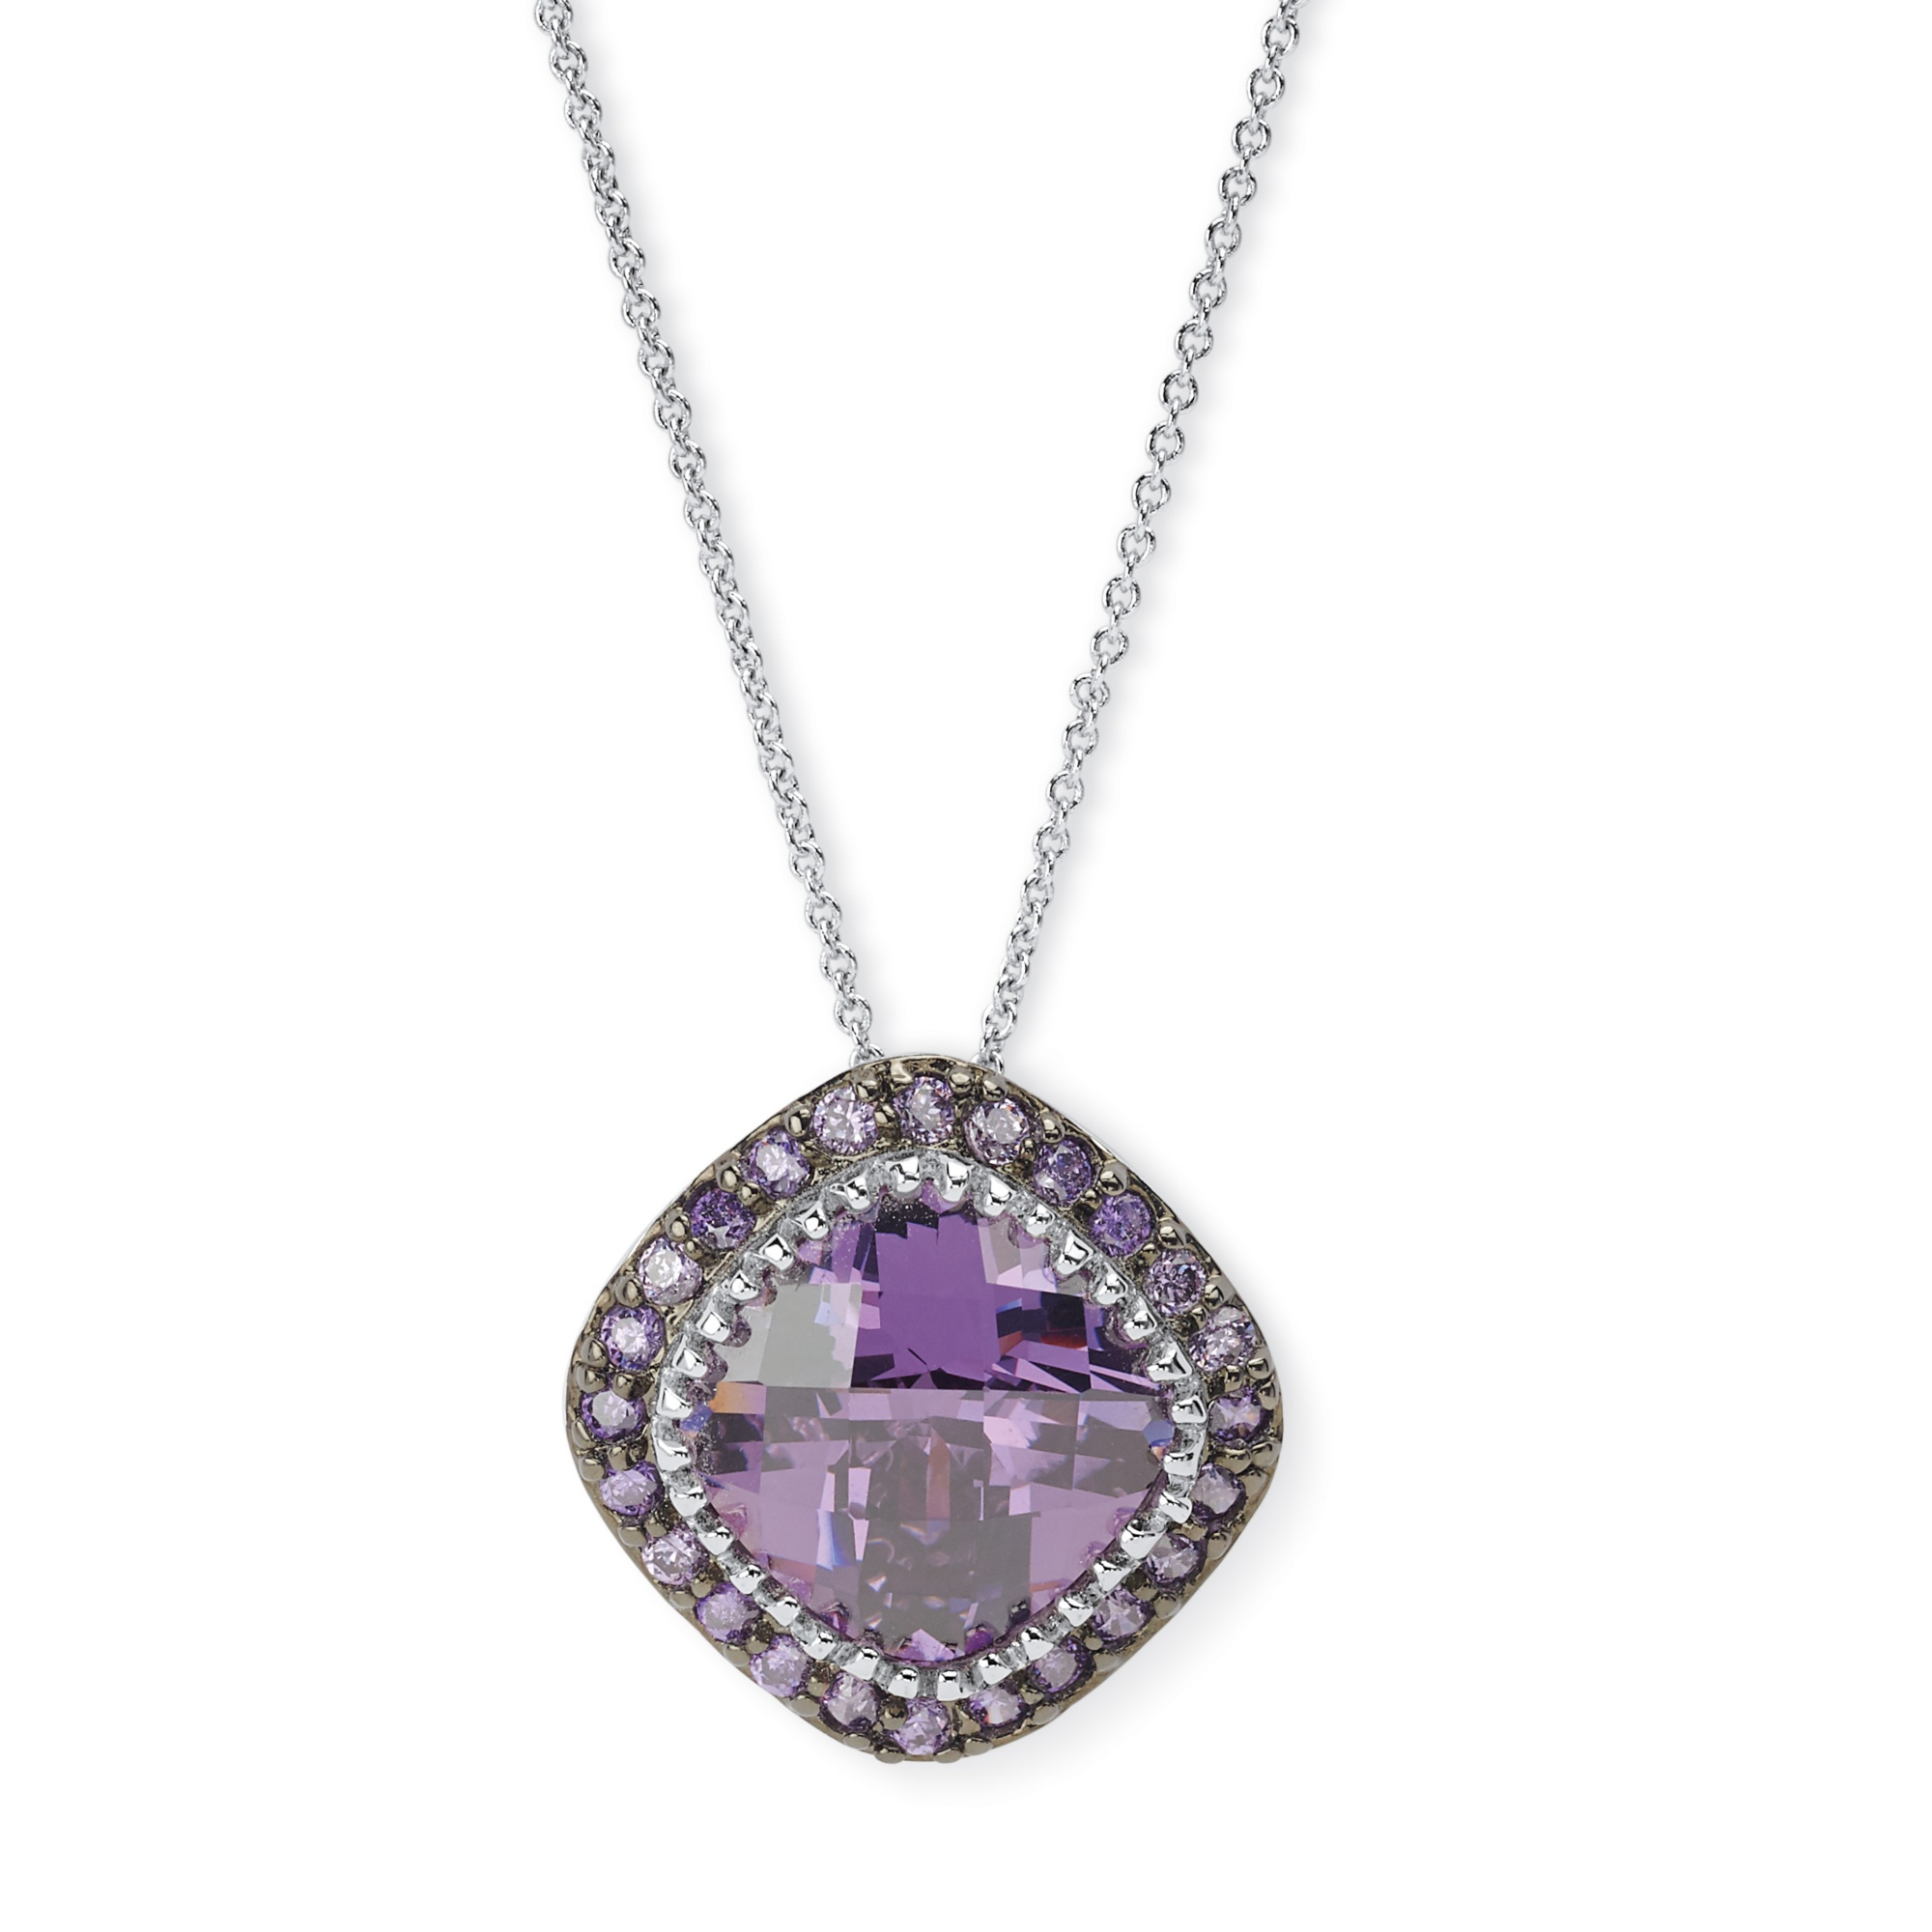 4.59 TCW Cushion-Cut Bezel-Set Amethyst Cubic Zirconia Pave Halo Pendant Necklace in Silvertone 16